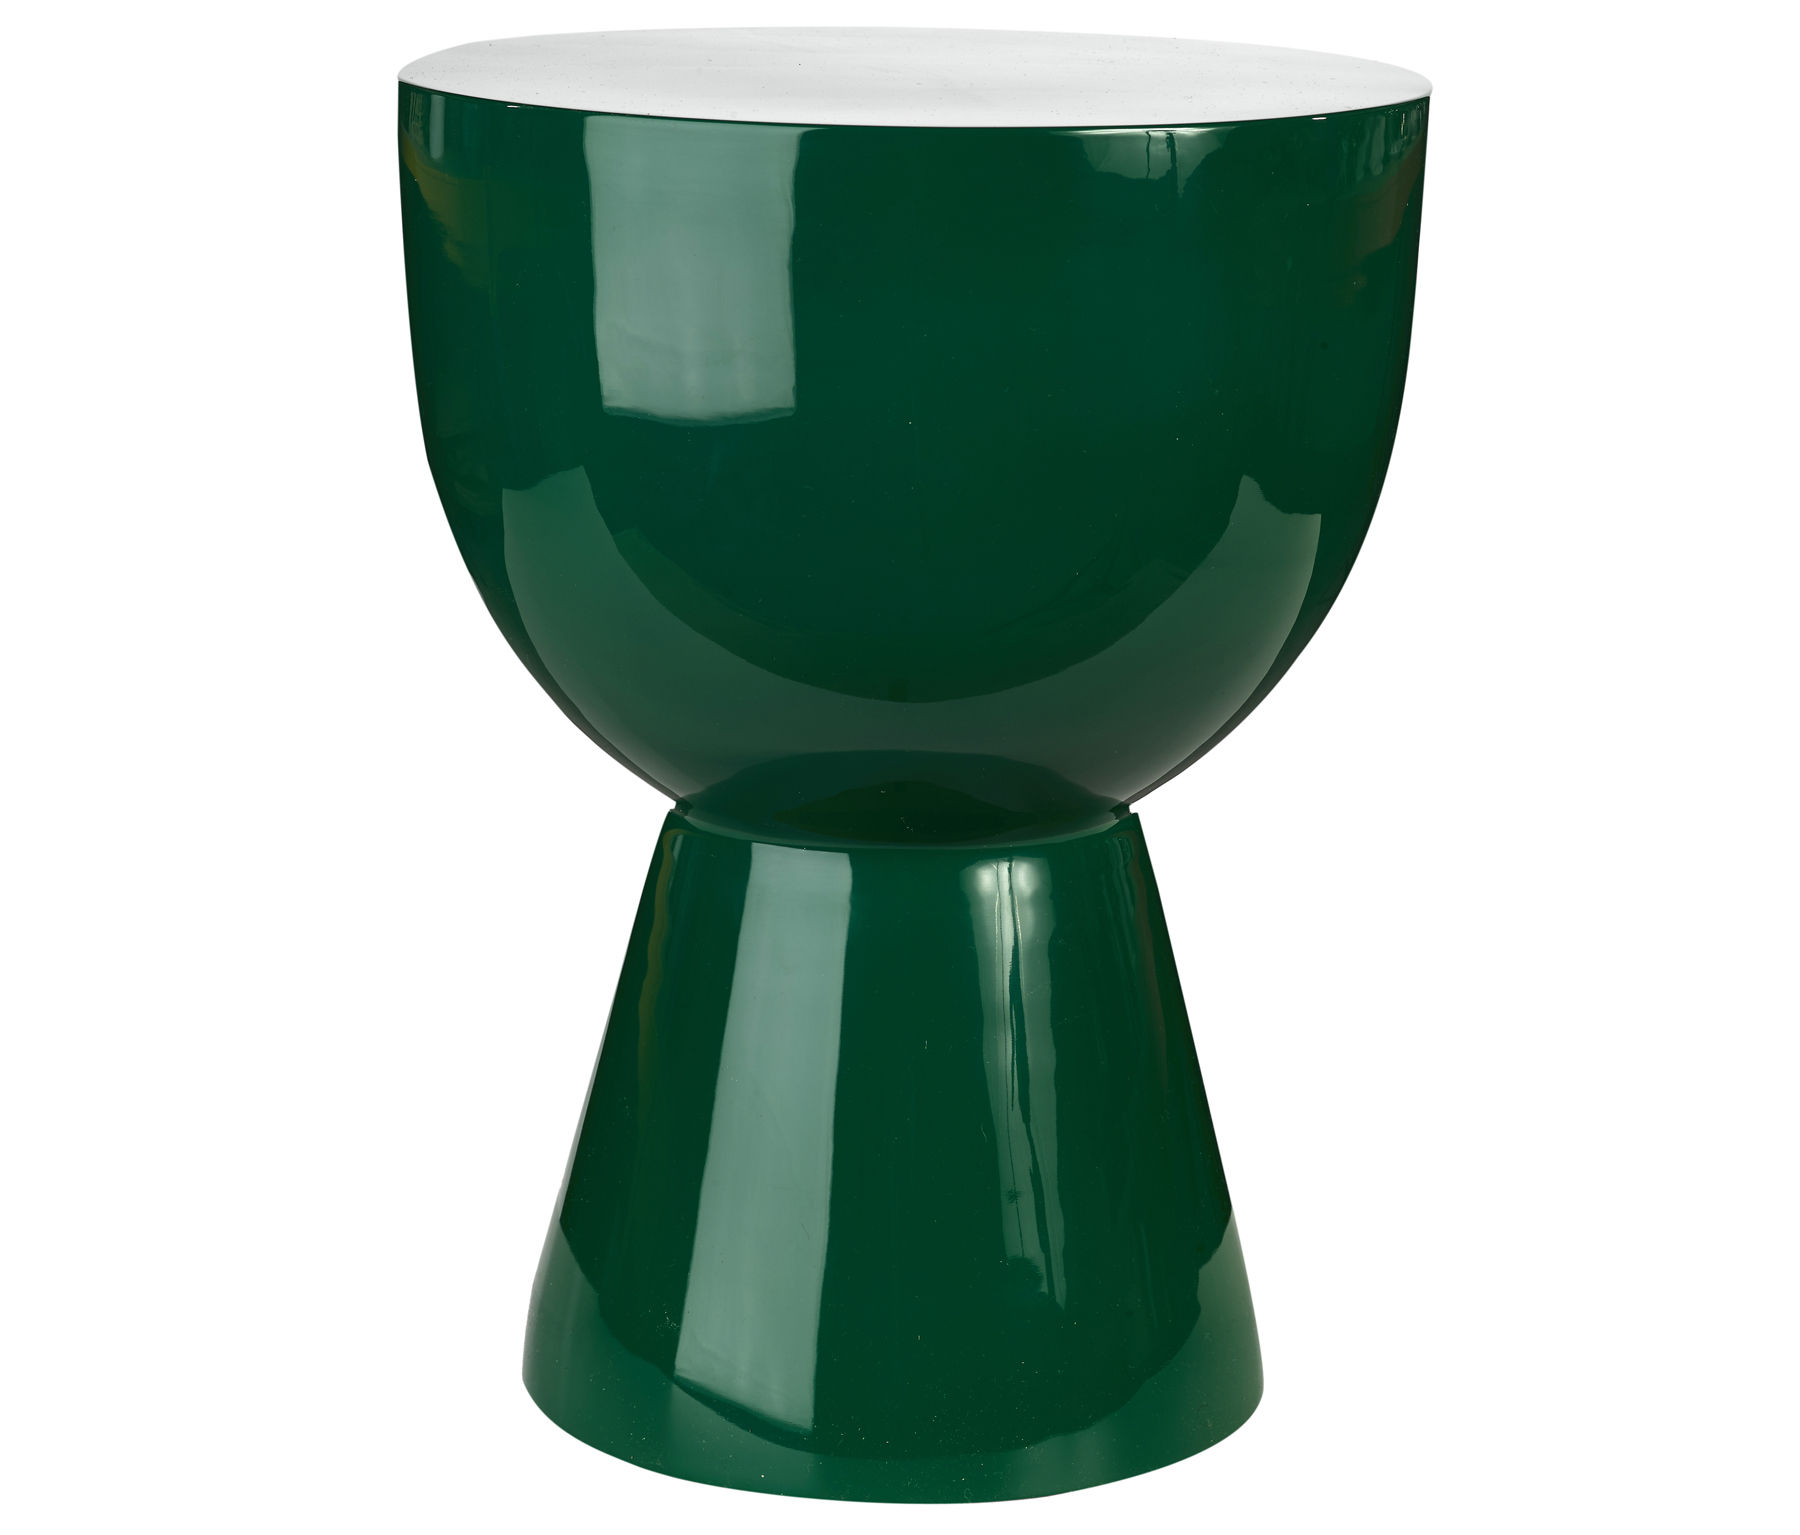 Furniture - Coffee Tables - Tam Tam Stool - Coffee table - Plastic by Pols Potten - Emerald green - Polyester